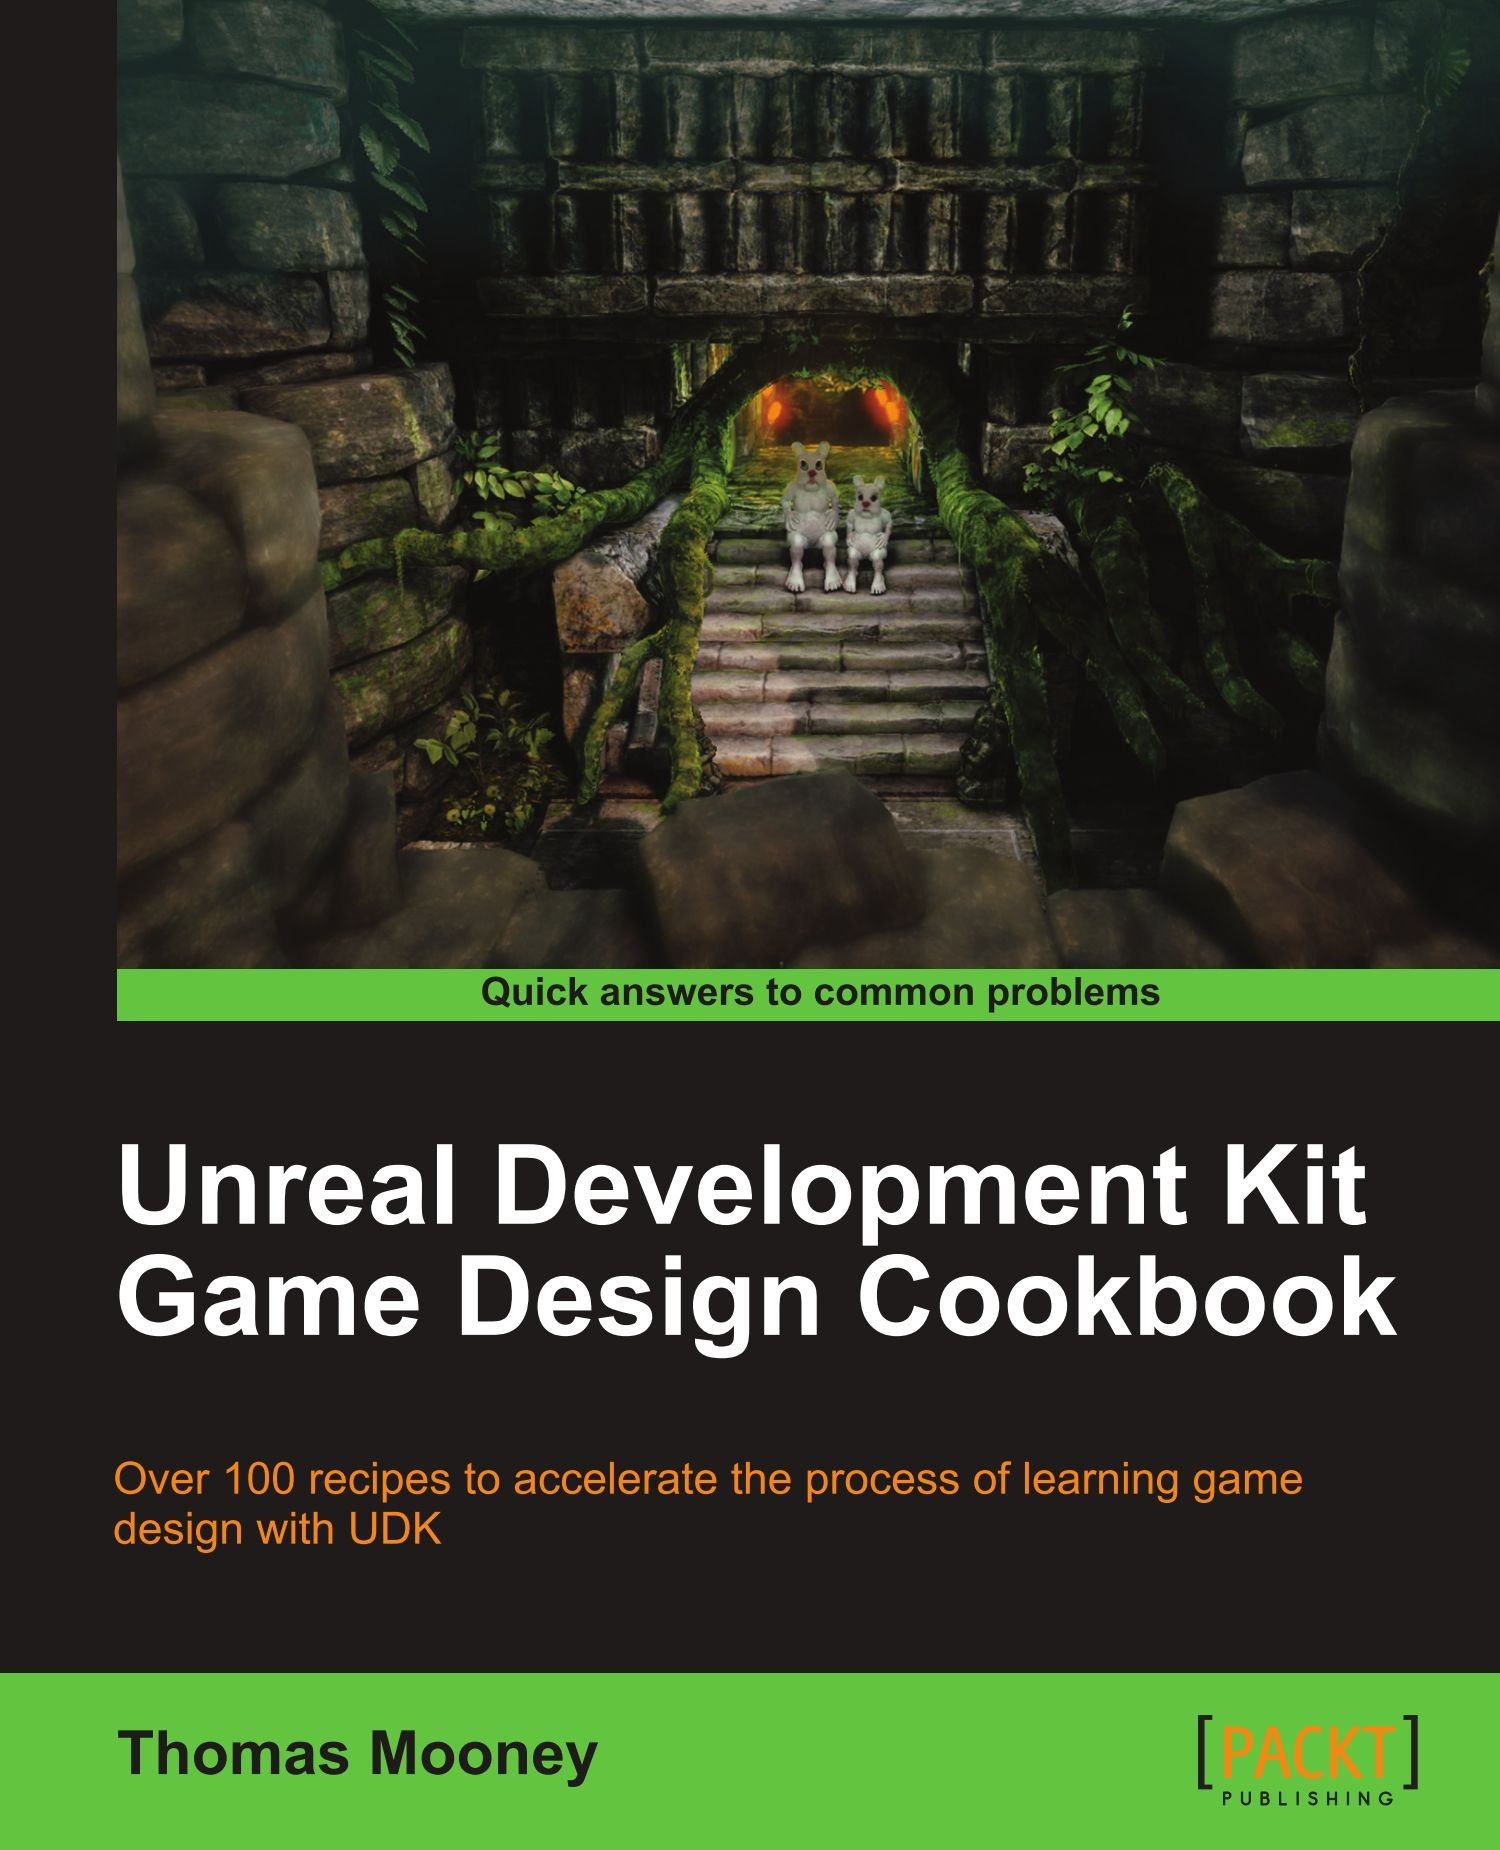 Unreal Development Kit Game Design Cookbook: Thomas Mooney